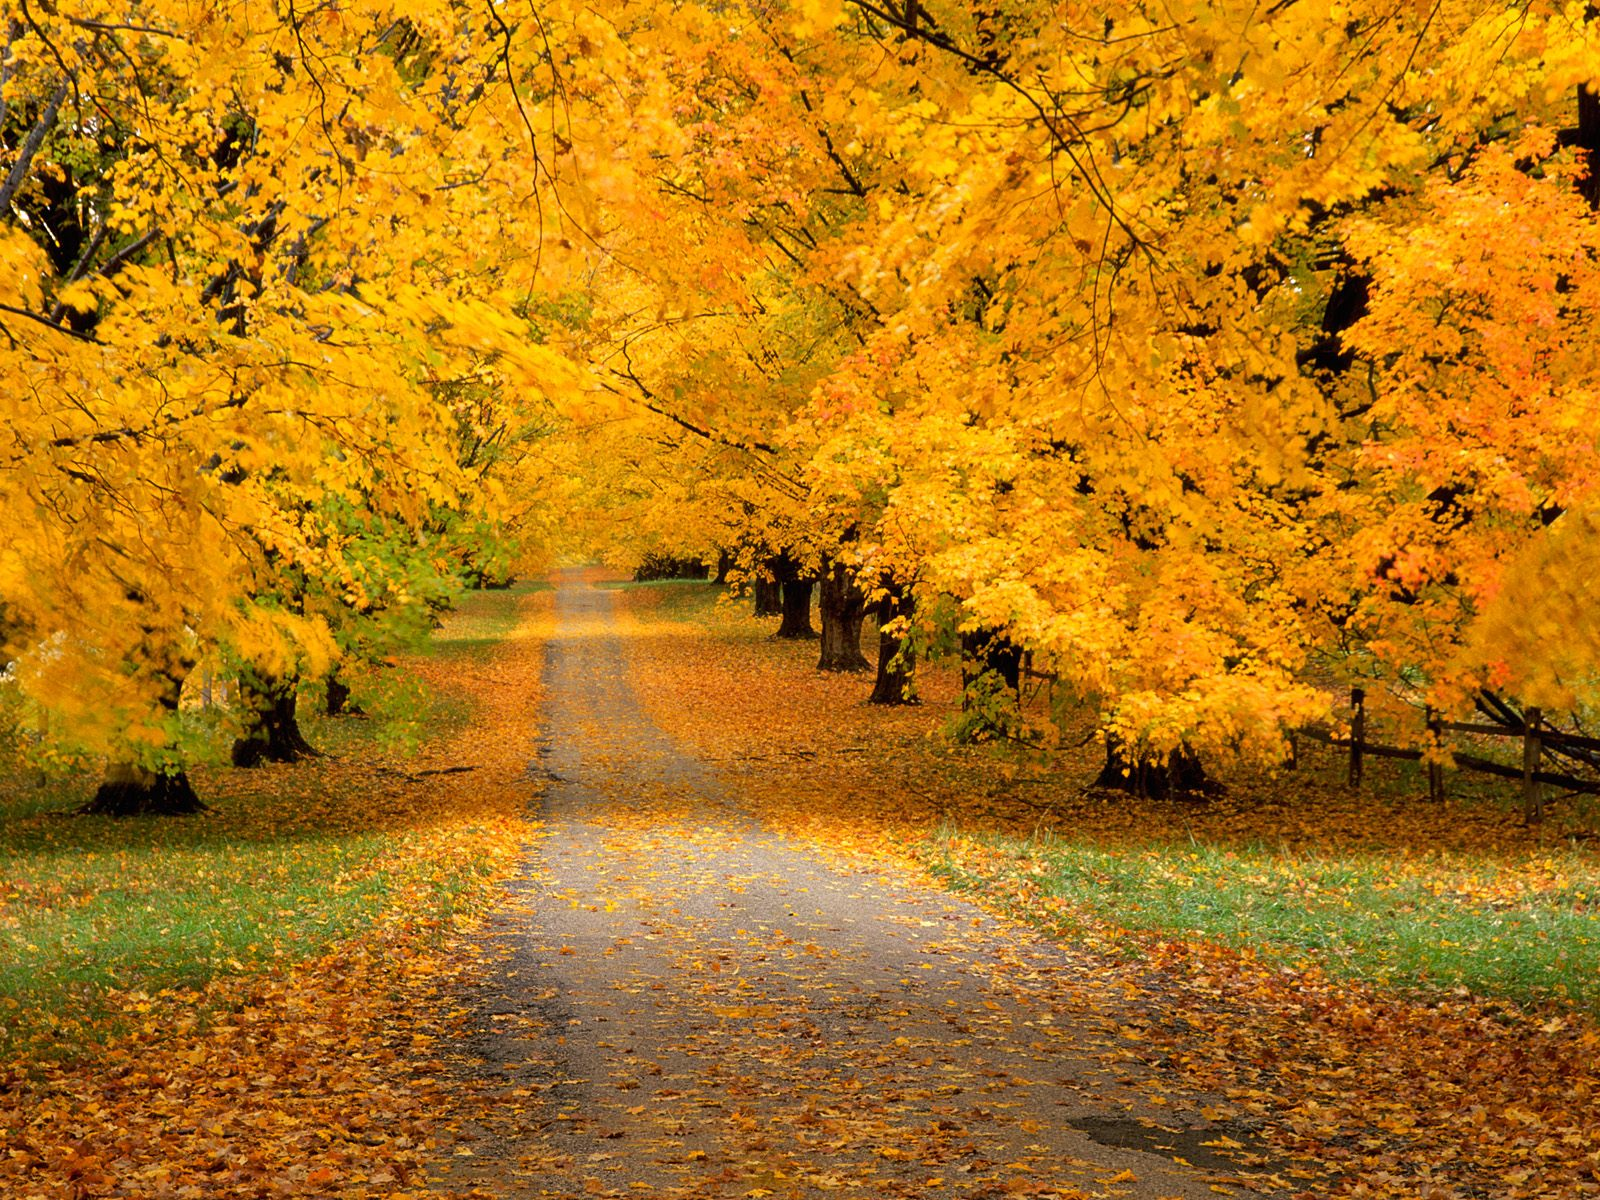 Autumn wallpapersAutumn picAutumn picturesAutumn imagesAutumn 1600x1200